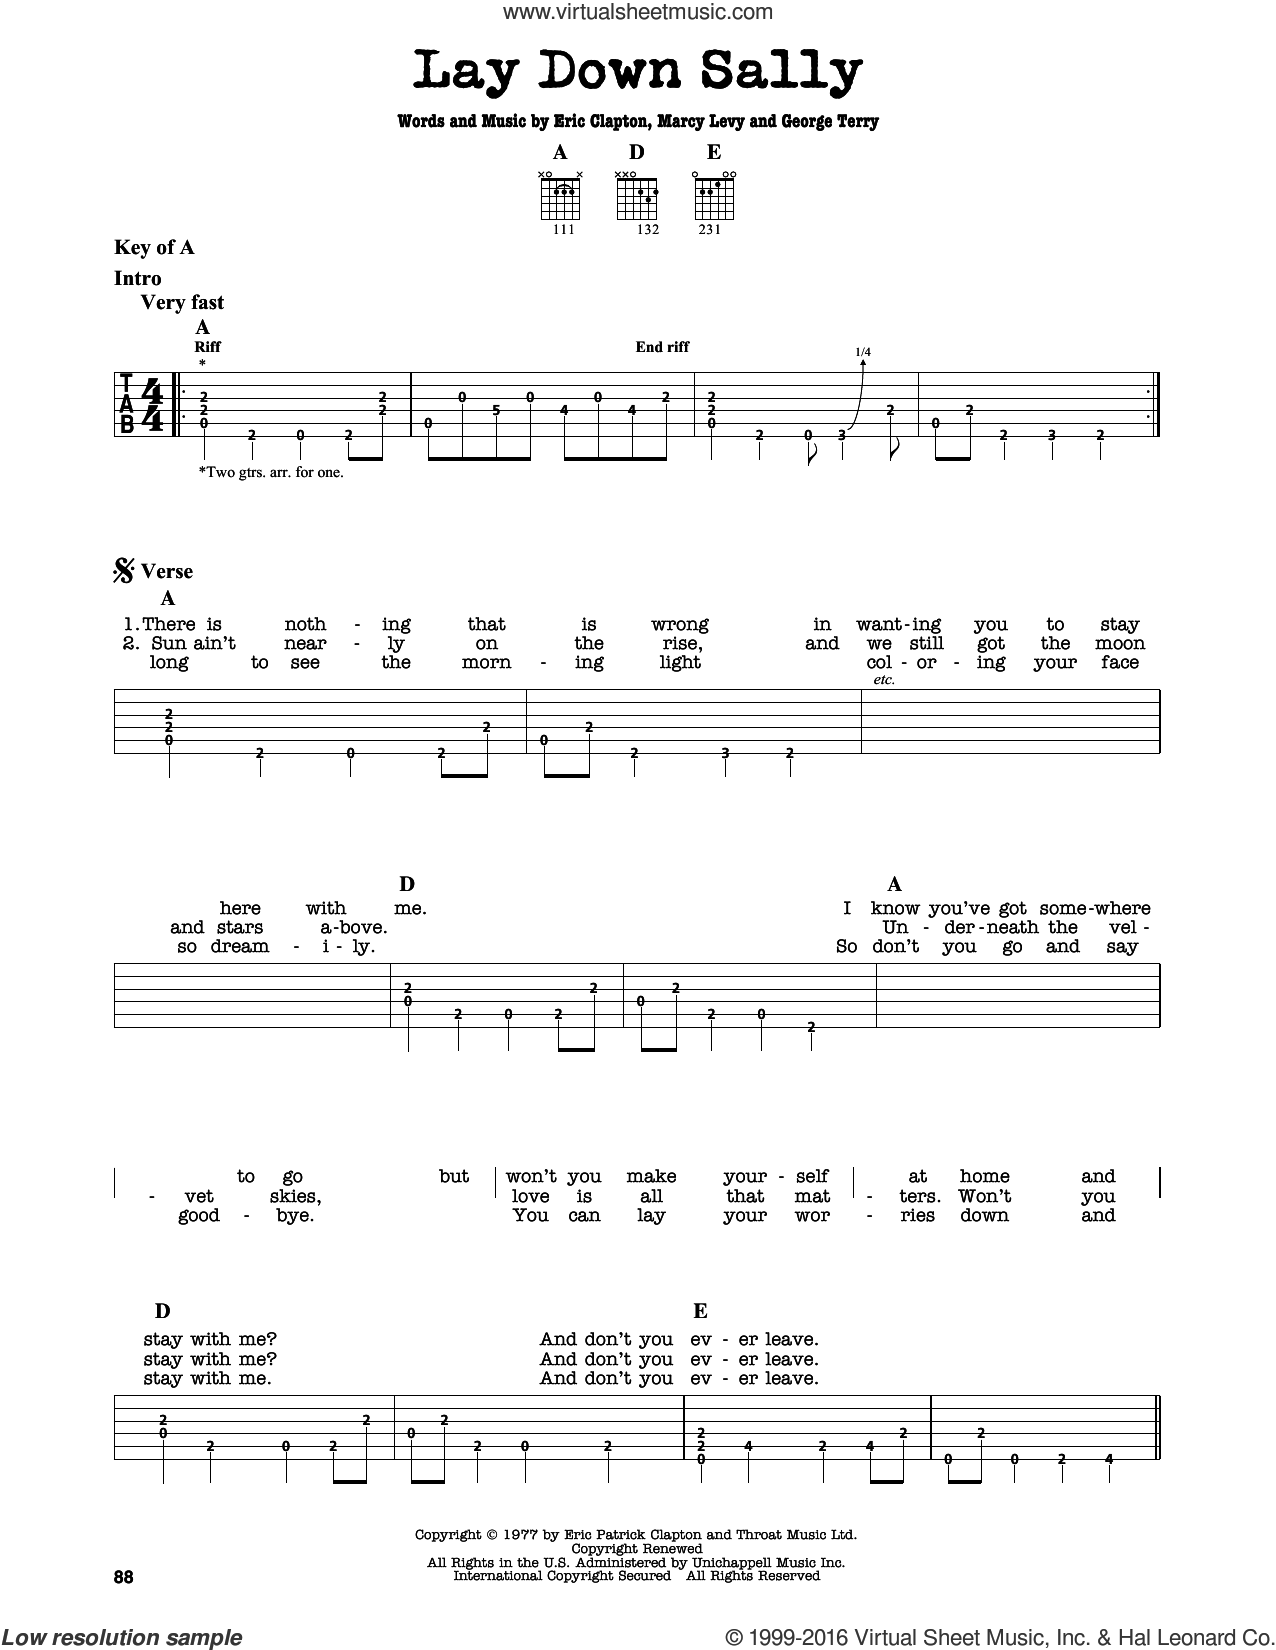 Lay Down Sally sheet music for guitar solo (lead sheet) by Eric Clapton, George Terry and Marcy Levy, intermediate guitar (lead sheet). Score Image Preview.